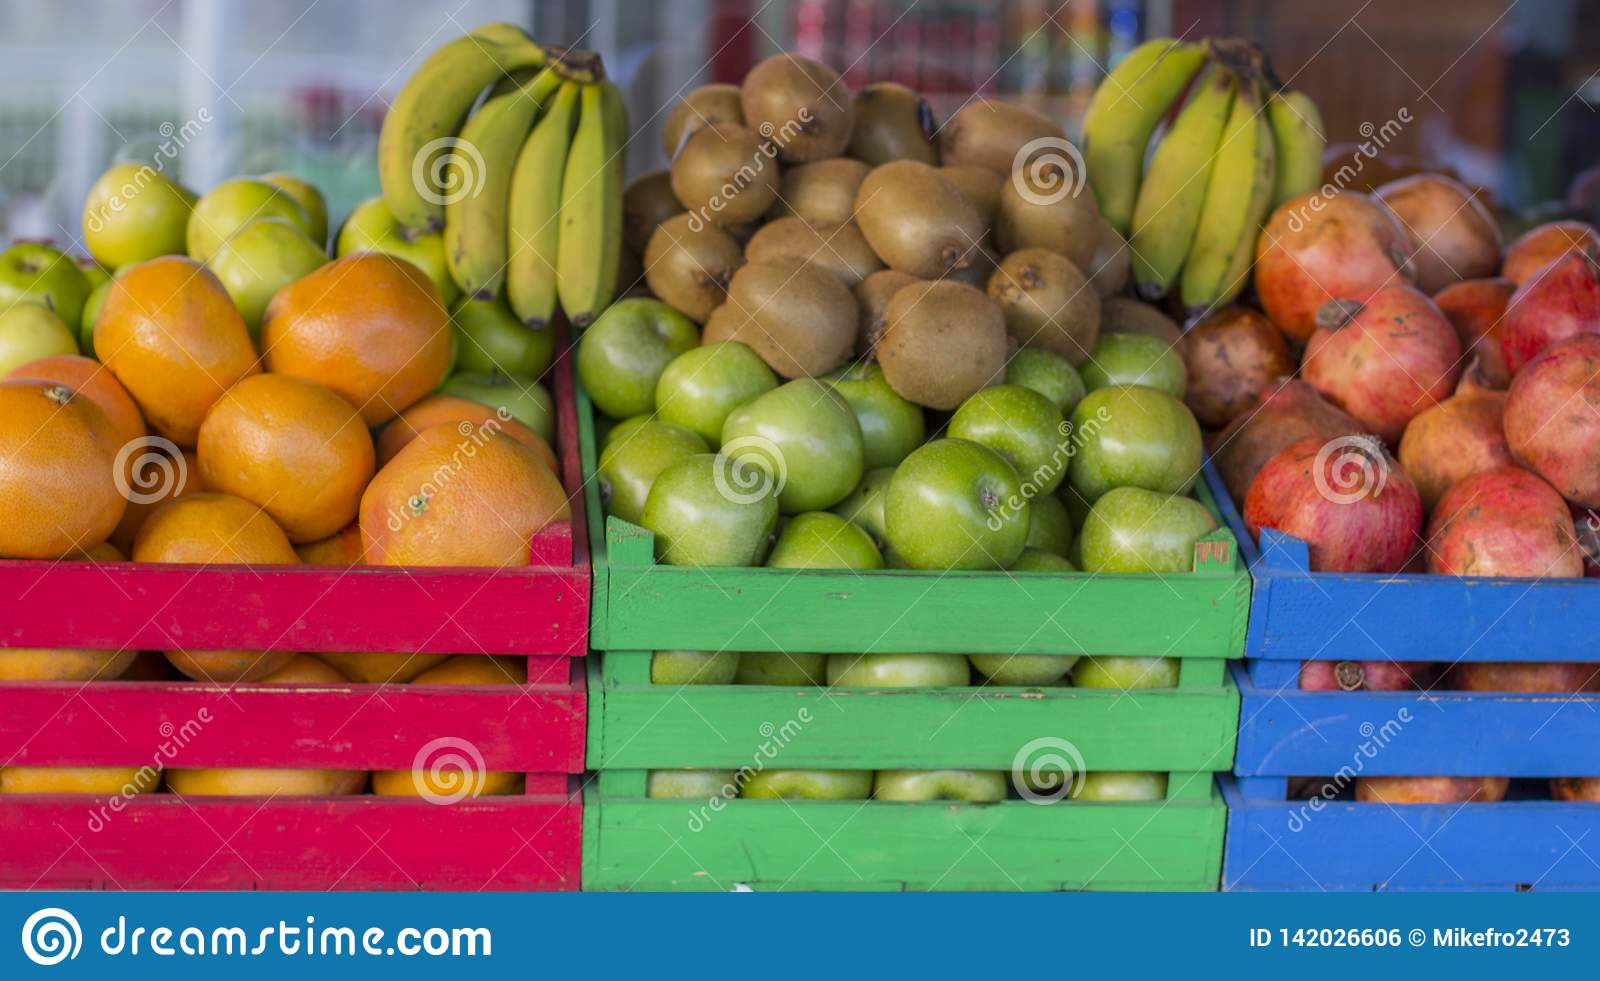 Fruits in colored wooden crates. Cages full of fruit